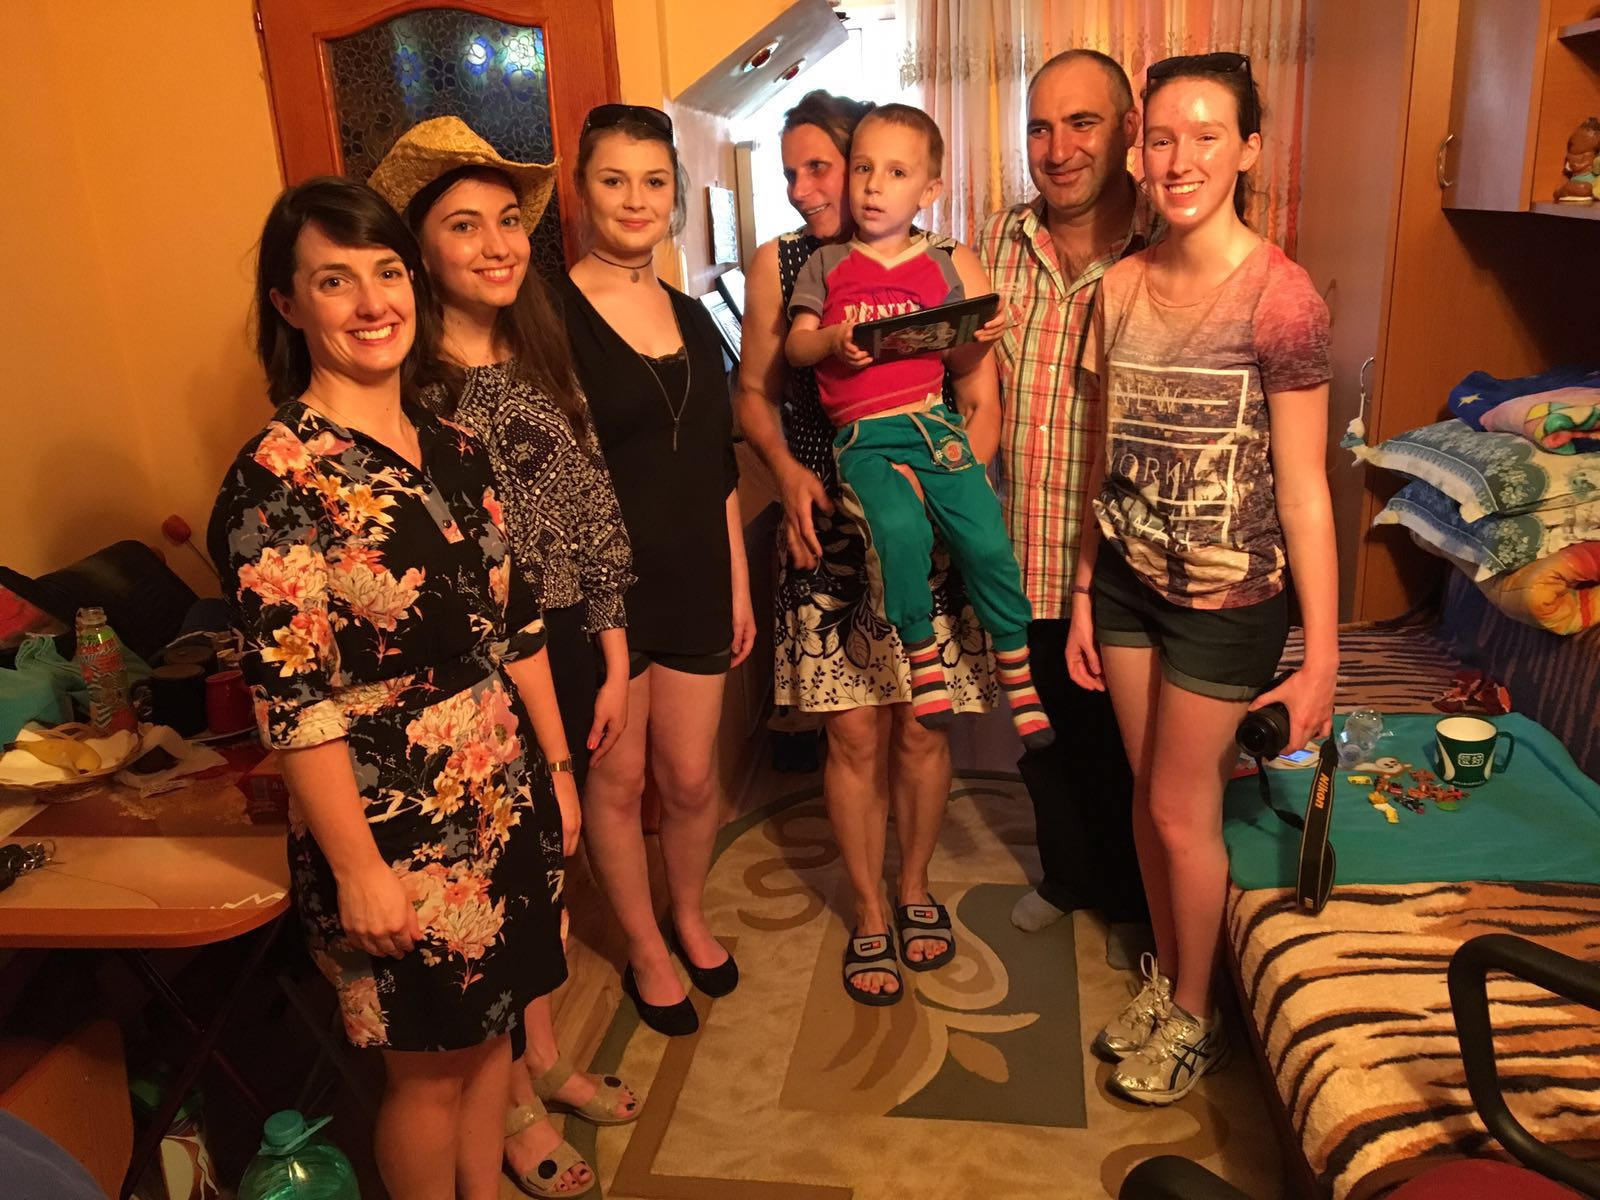 Our visit to the Hongu family